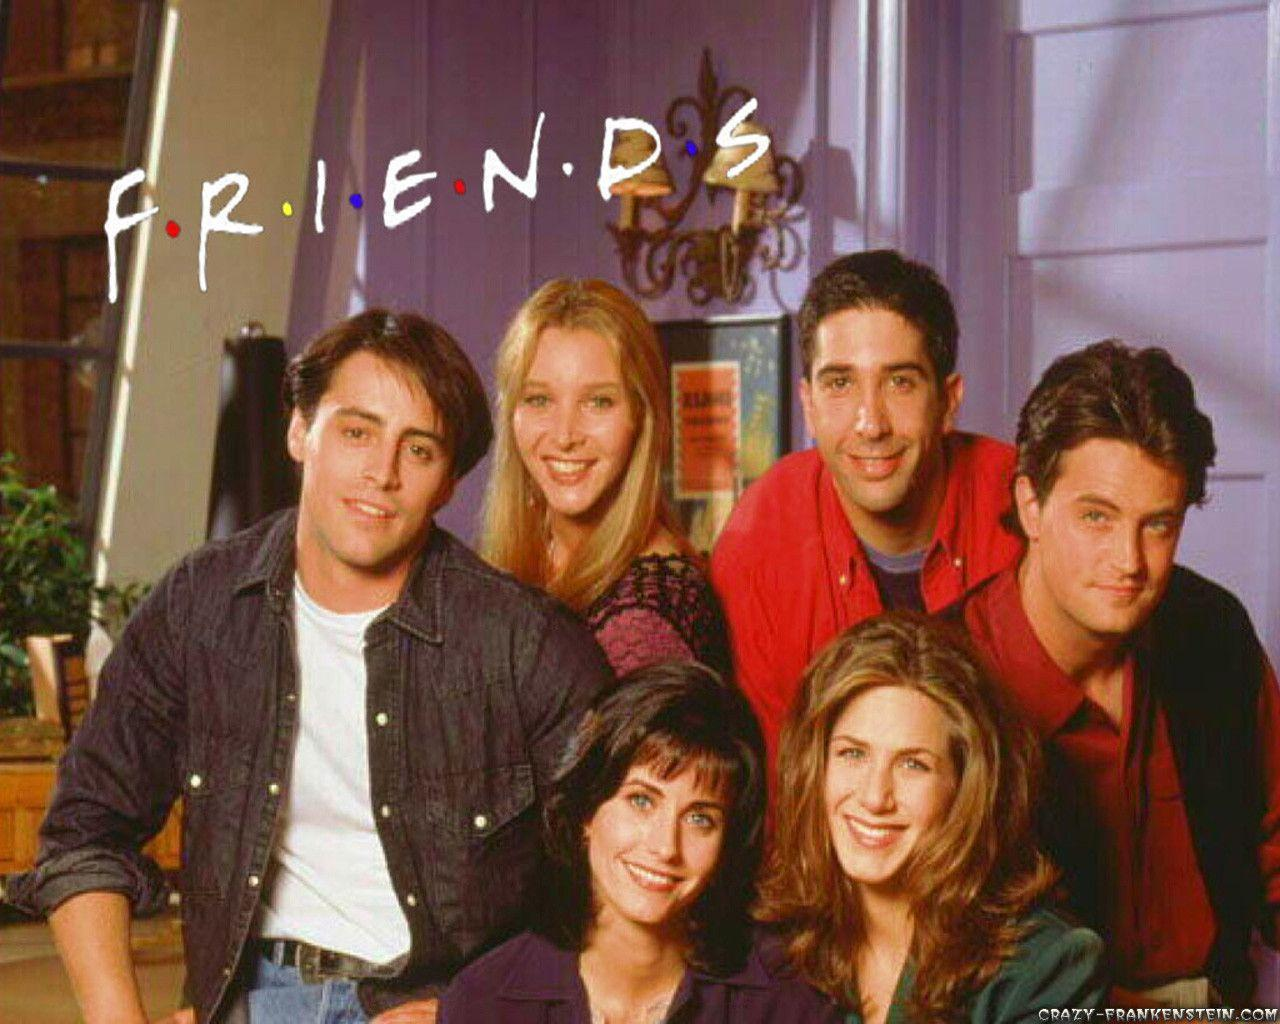 Social networks go wild with the possibility of NBC&Friends